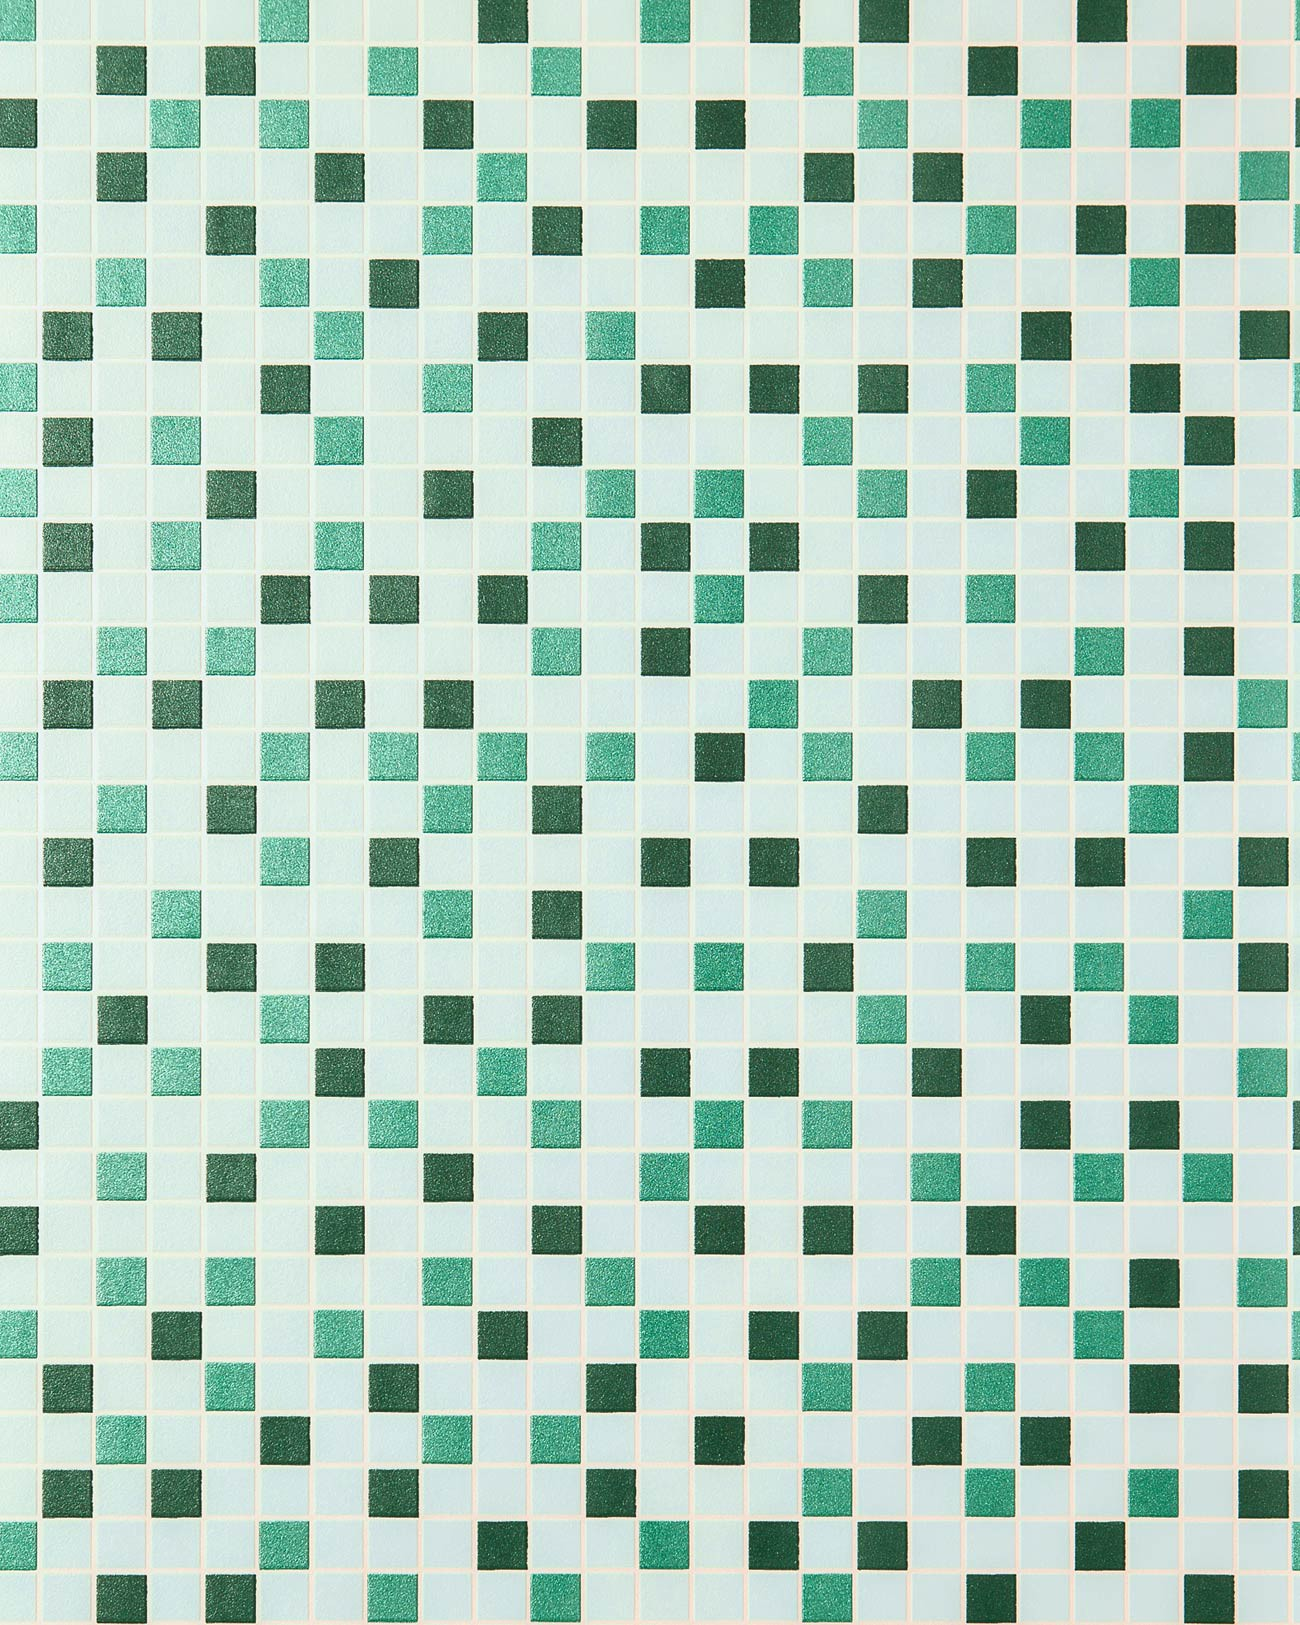 Kitchen Wallcovering Vinyl Mosaic Wallpaper Edem 1022 15 Tile Stone Decor Embossed Texture Mint Green Turquoise Emerald Silver 5 33 Sqm 57 Sq Ft